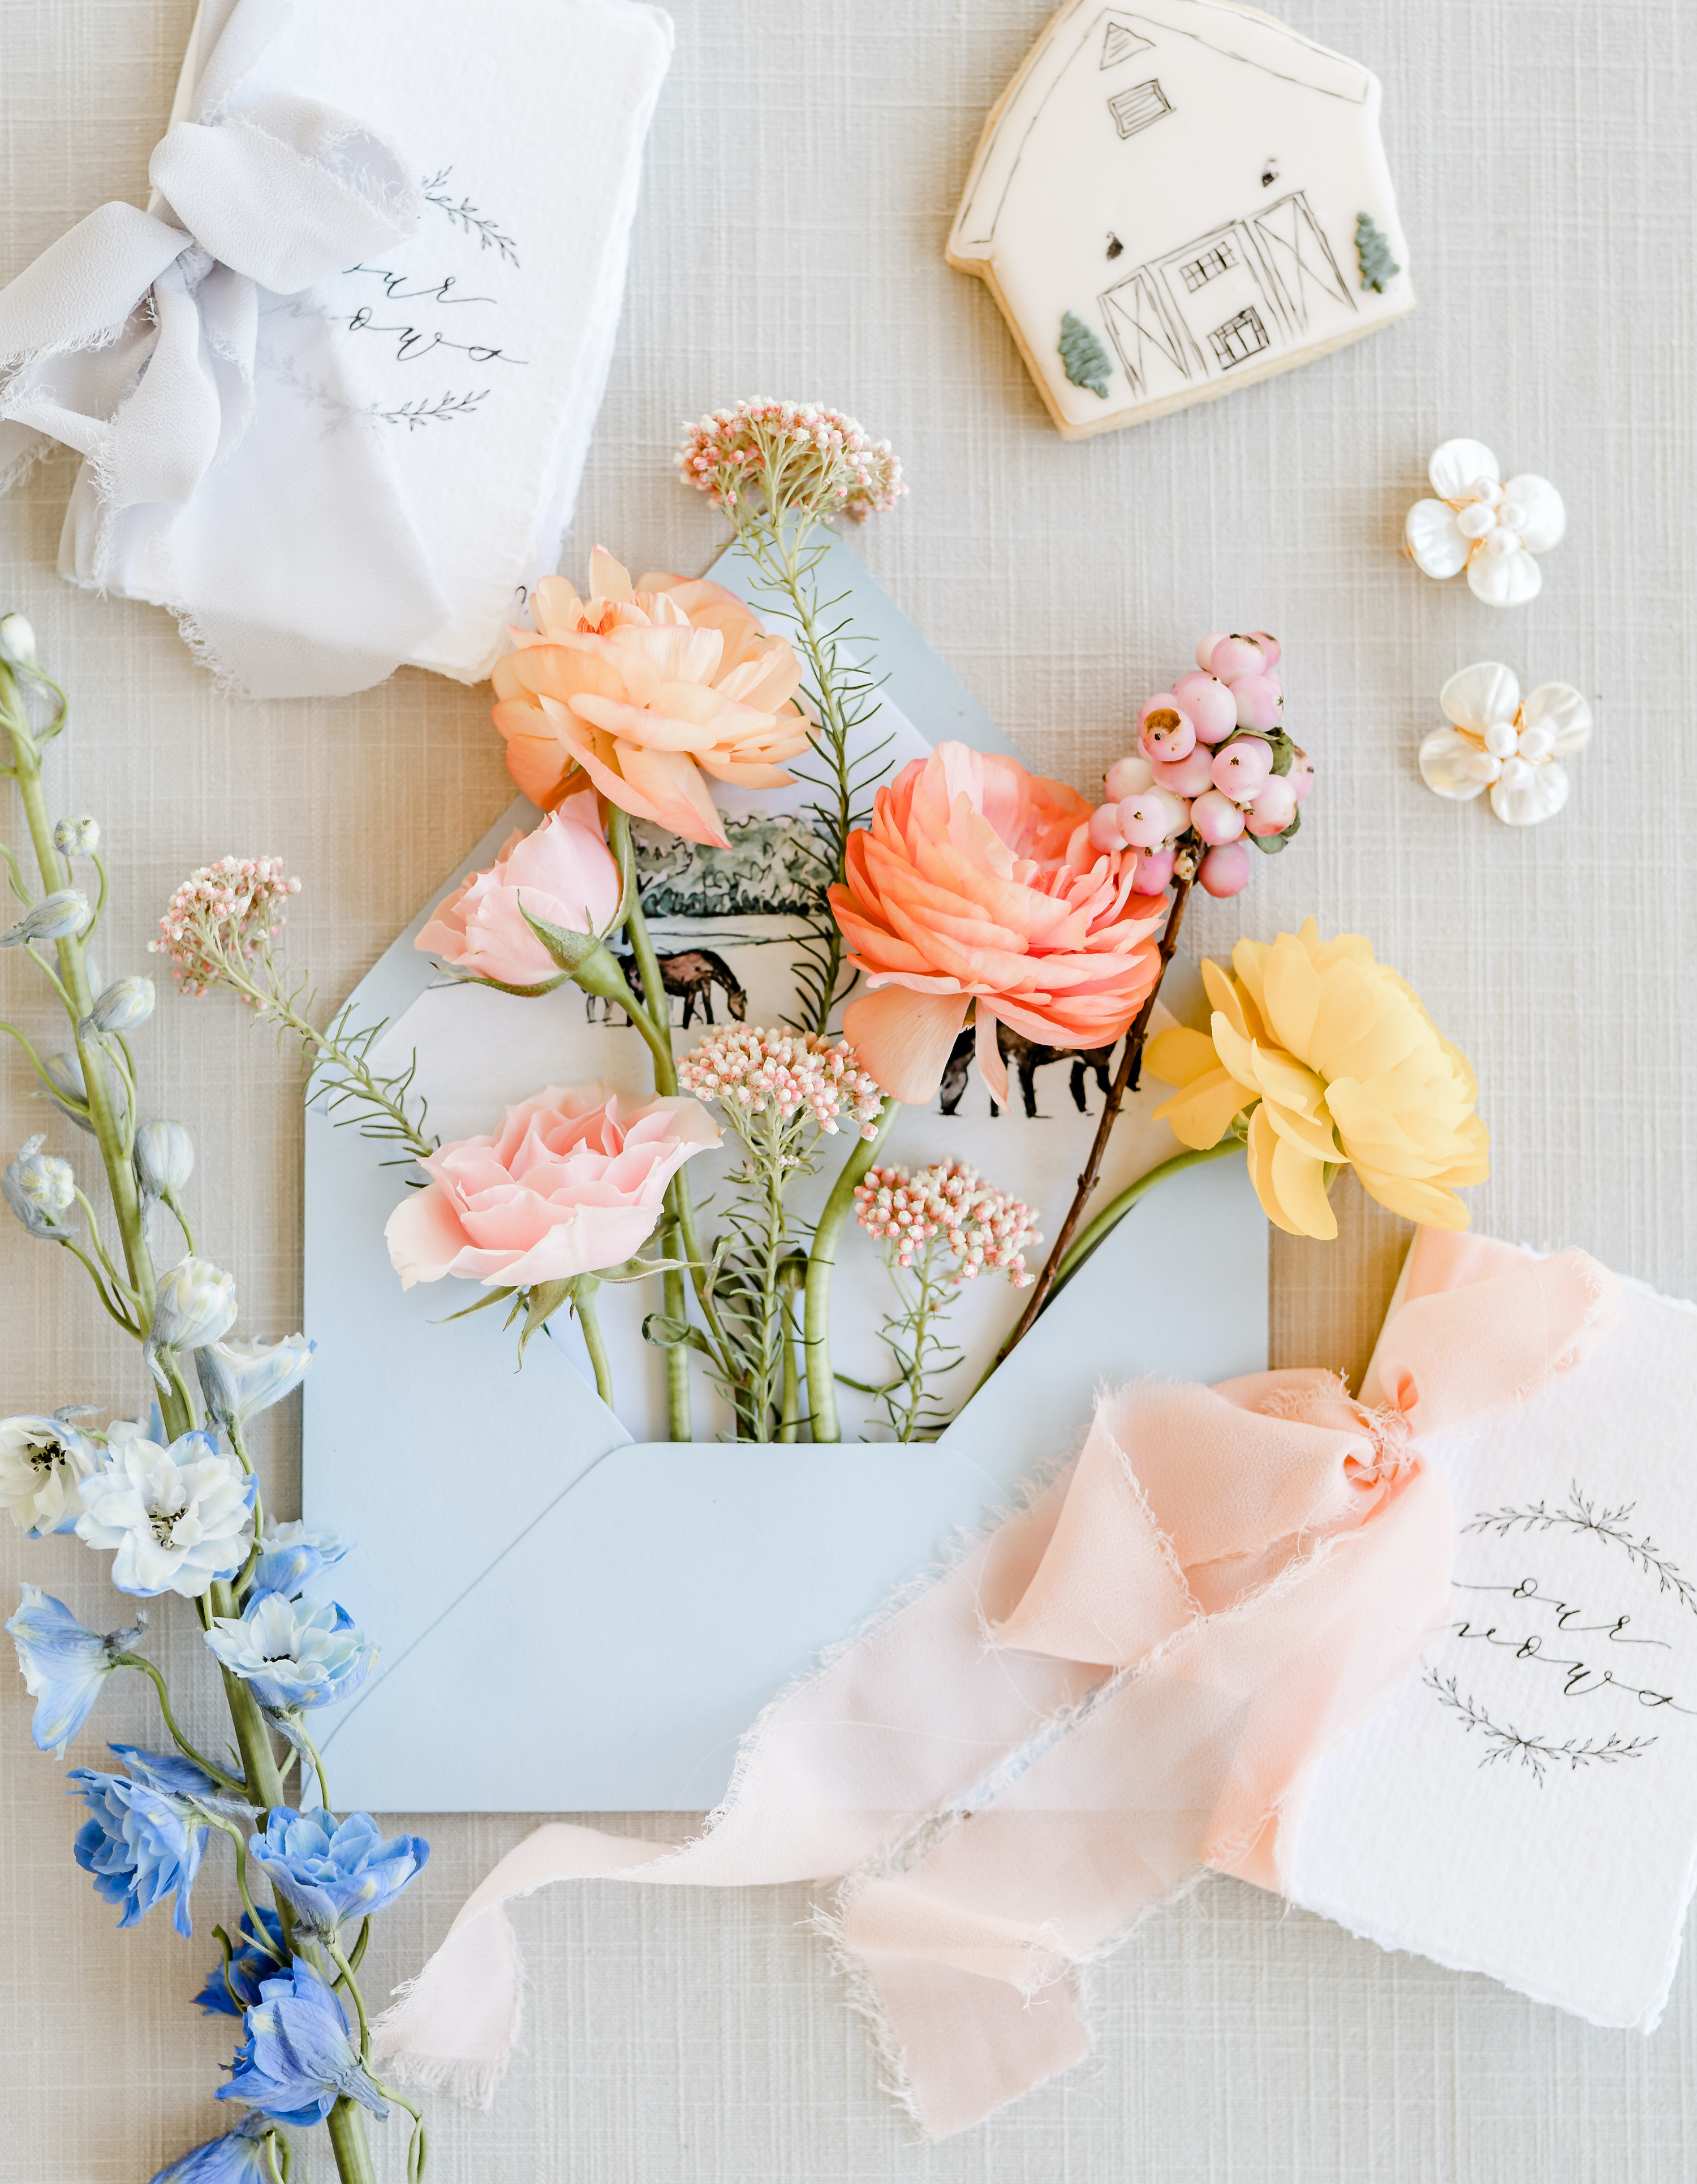 Colorful flowers flow out of a blue envelope for Crystal and Micheal's friendly spring wedding.